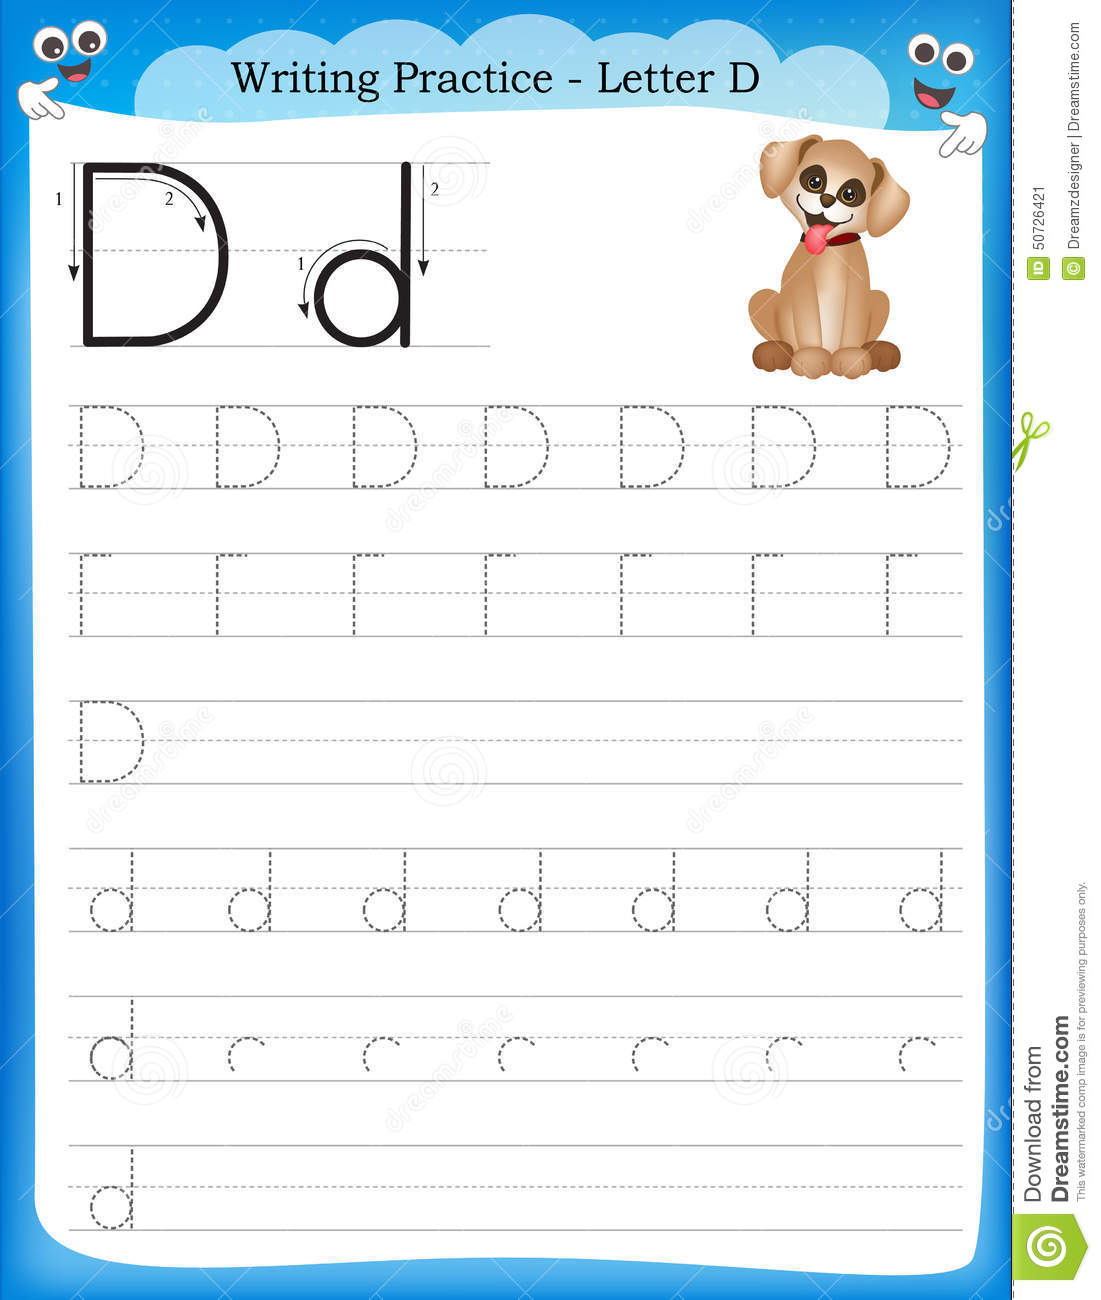 Writing practice letter D printable worksheet for preschool ...